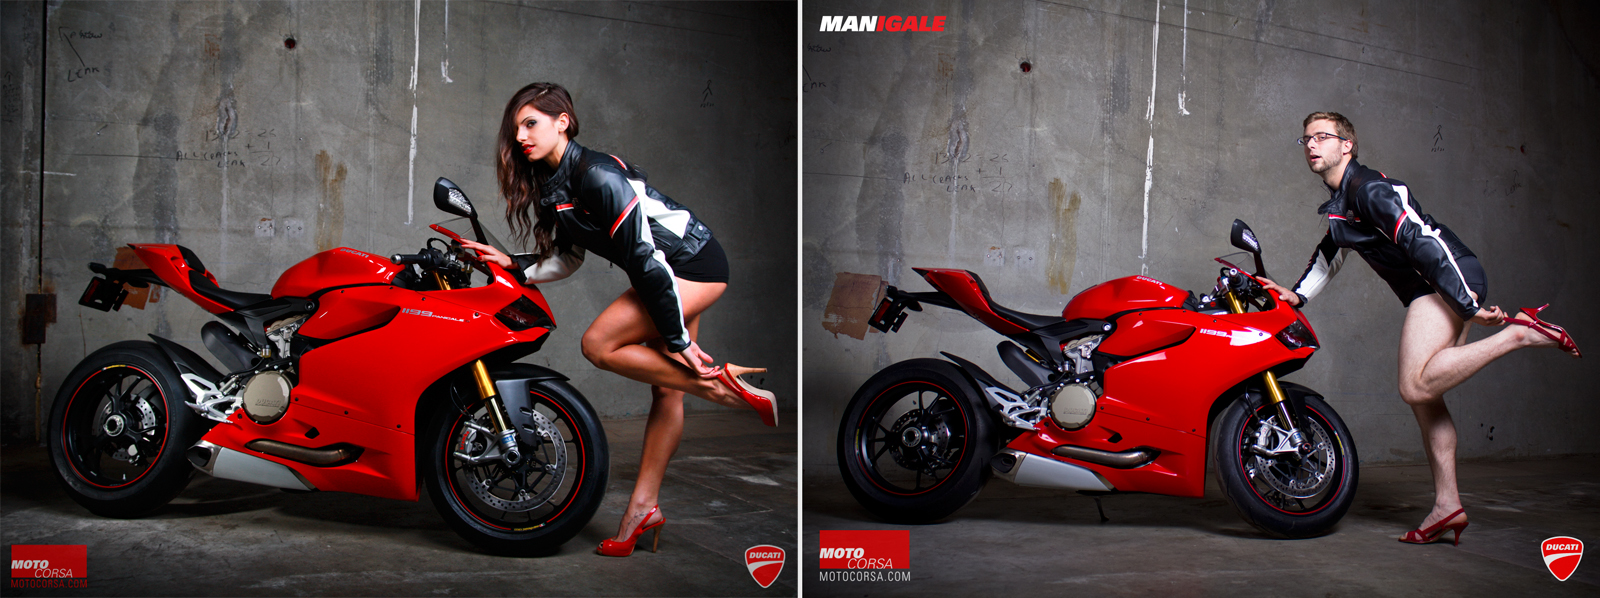 manigale-ducati-1199-wallpaper-18-comp